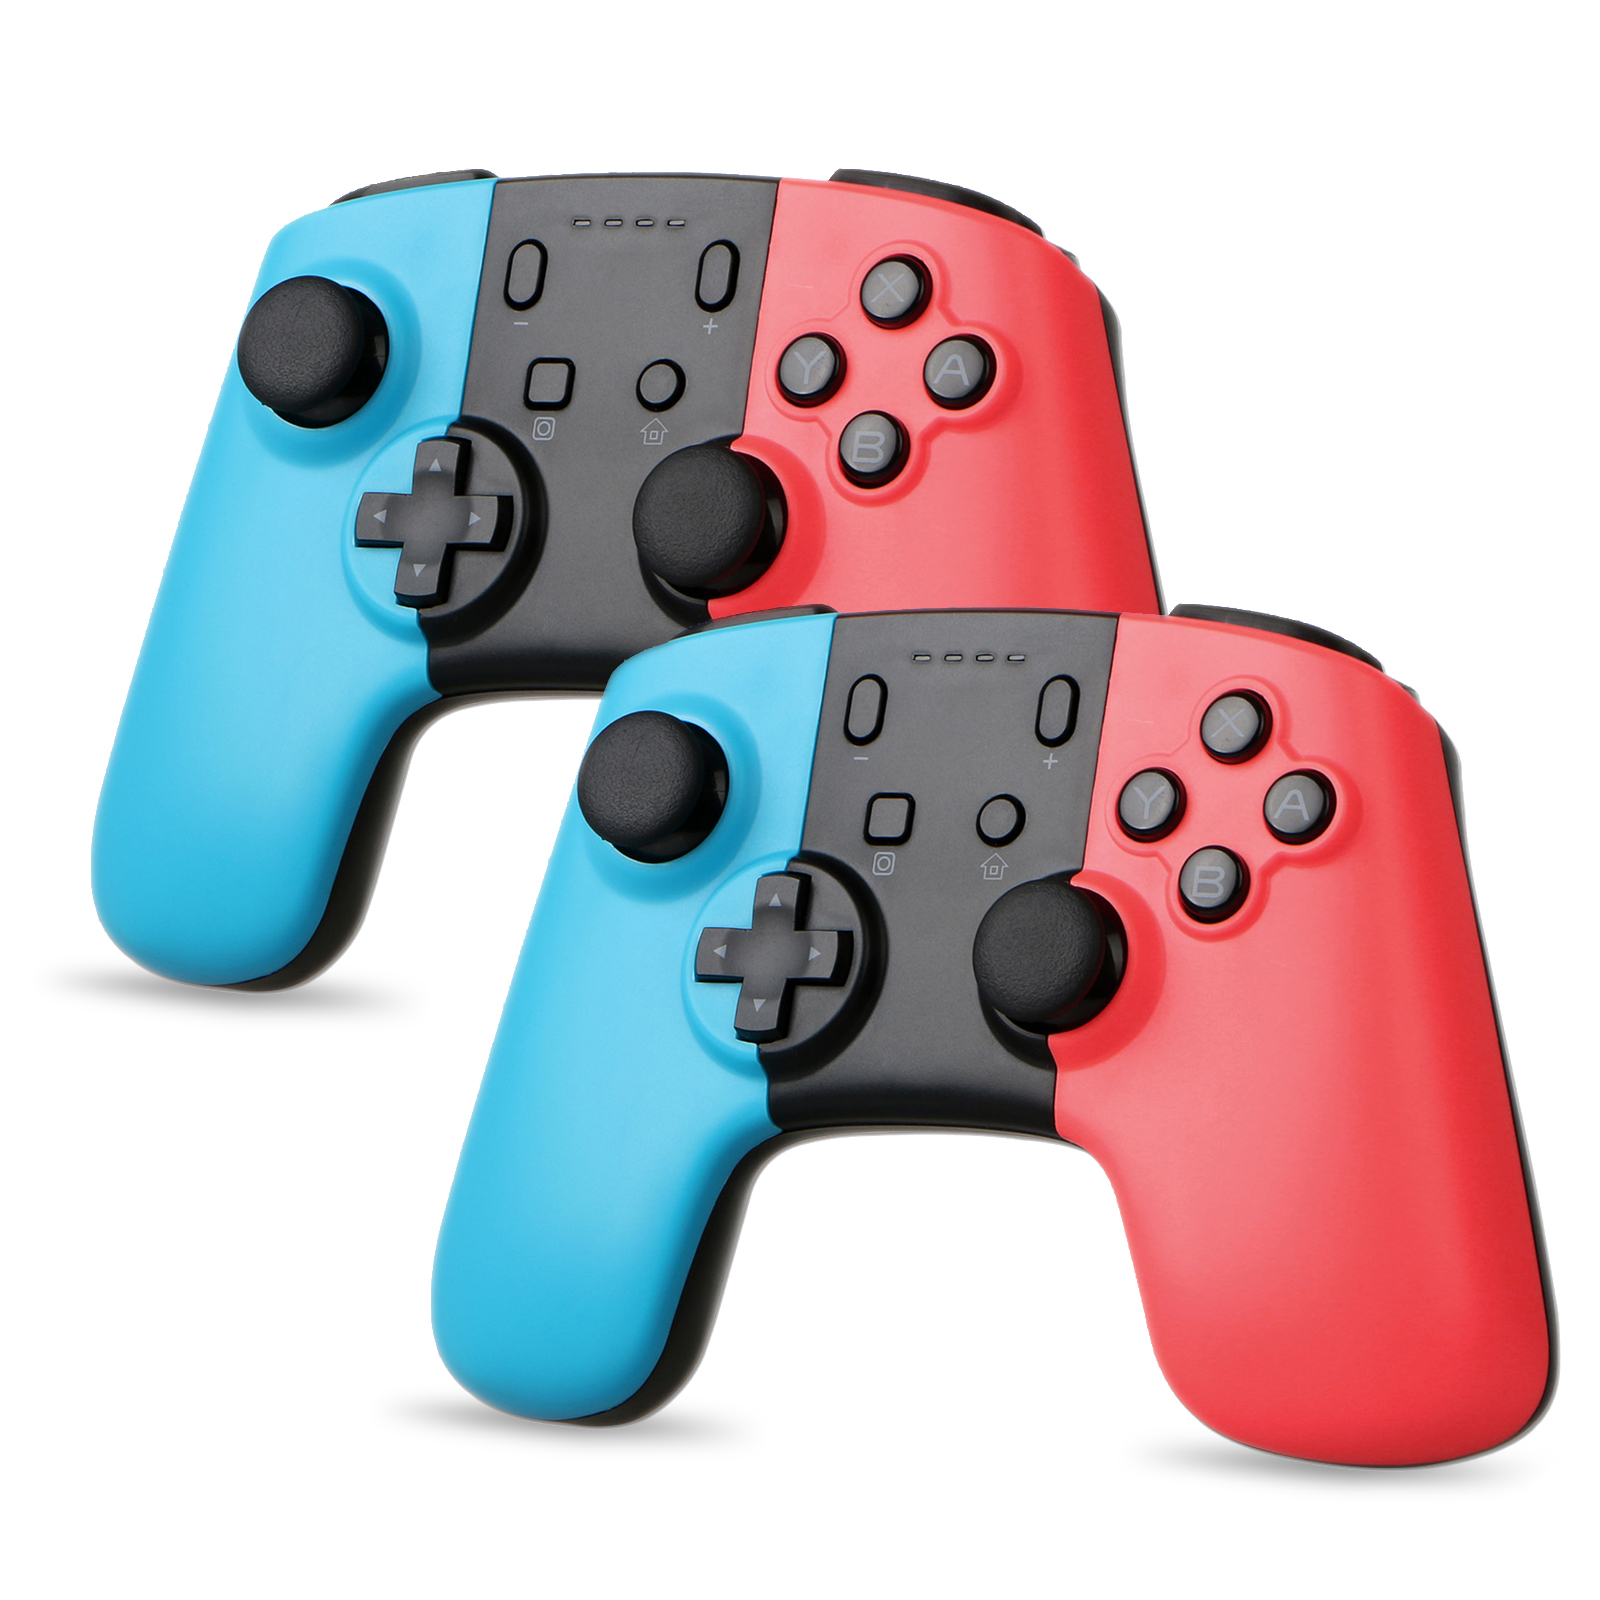 TSV 2Pack Wireless Controller for Nintendo Switch, Wireless Remote Pro Controller Joypad Gamepad for Nintendo Switch Console Red & Blue